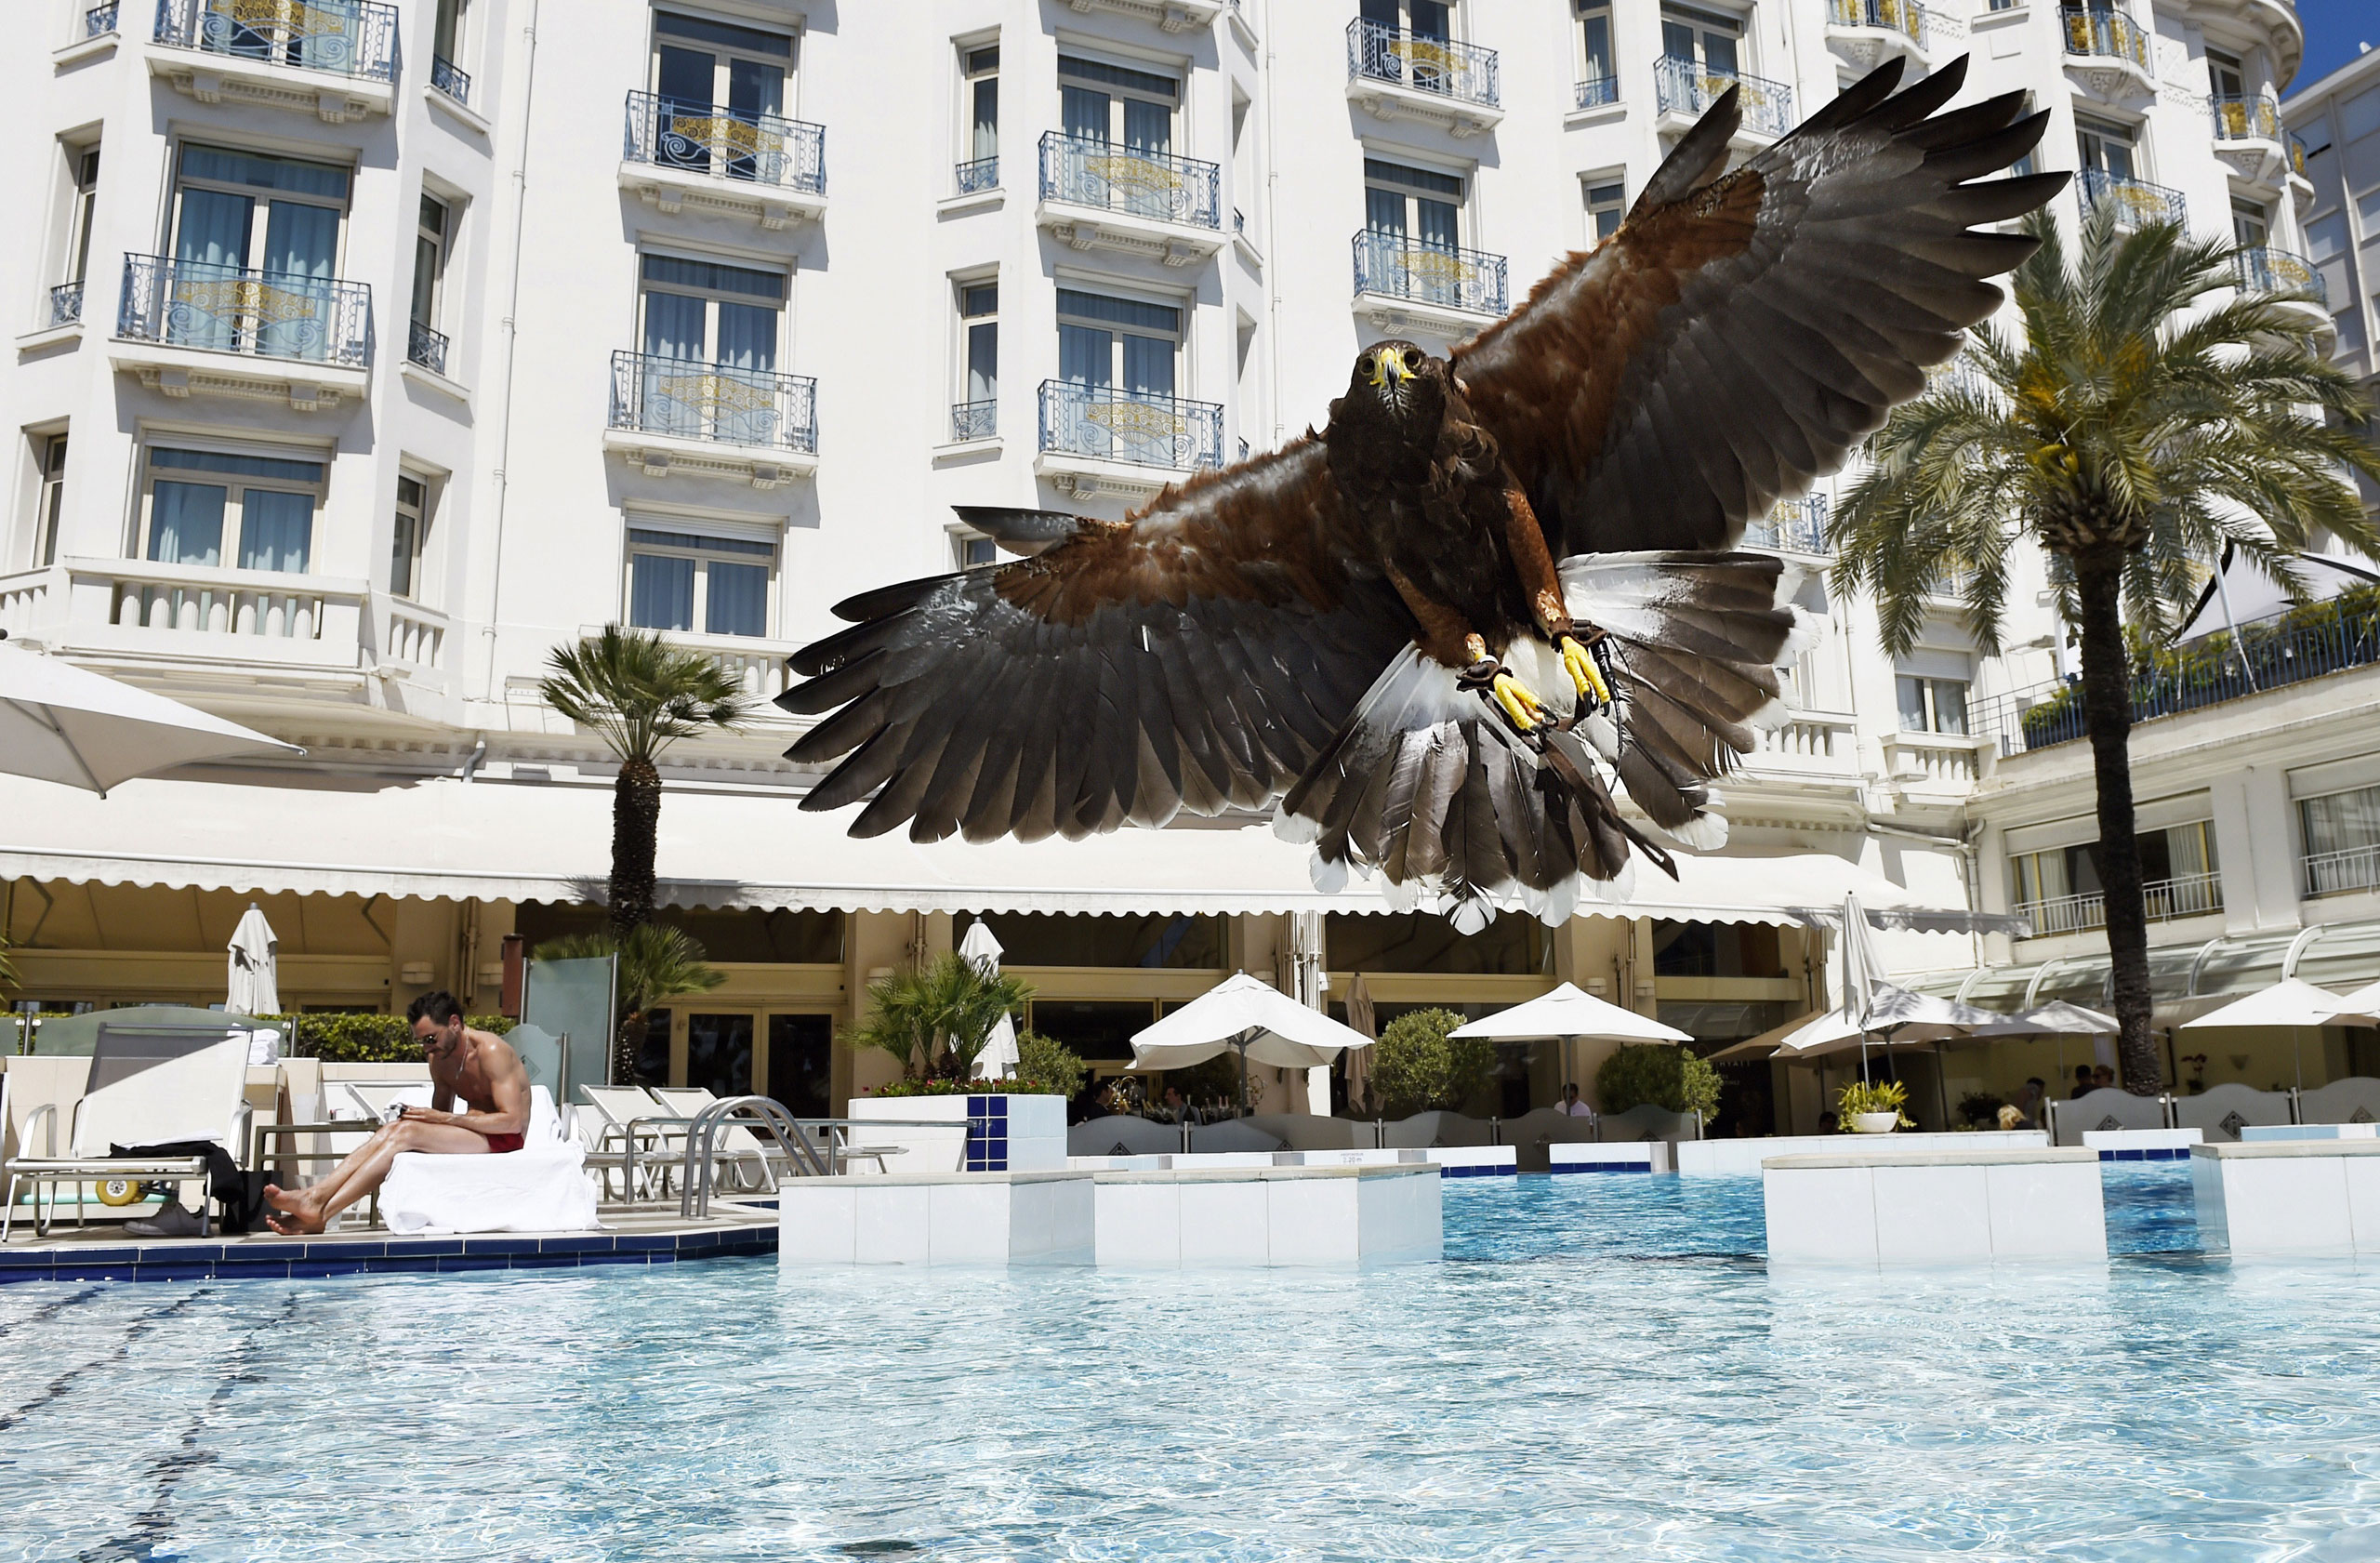 A hawk flies over the swimming pool of the Grand Hyatt Cannes Hotel Martinez during the 68th Cannes Film Festival in Cannes, France, May 20, 2015.